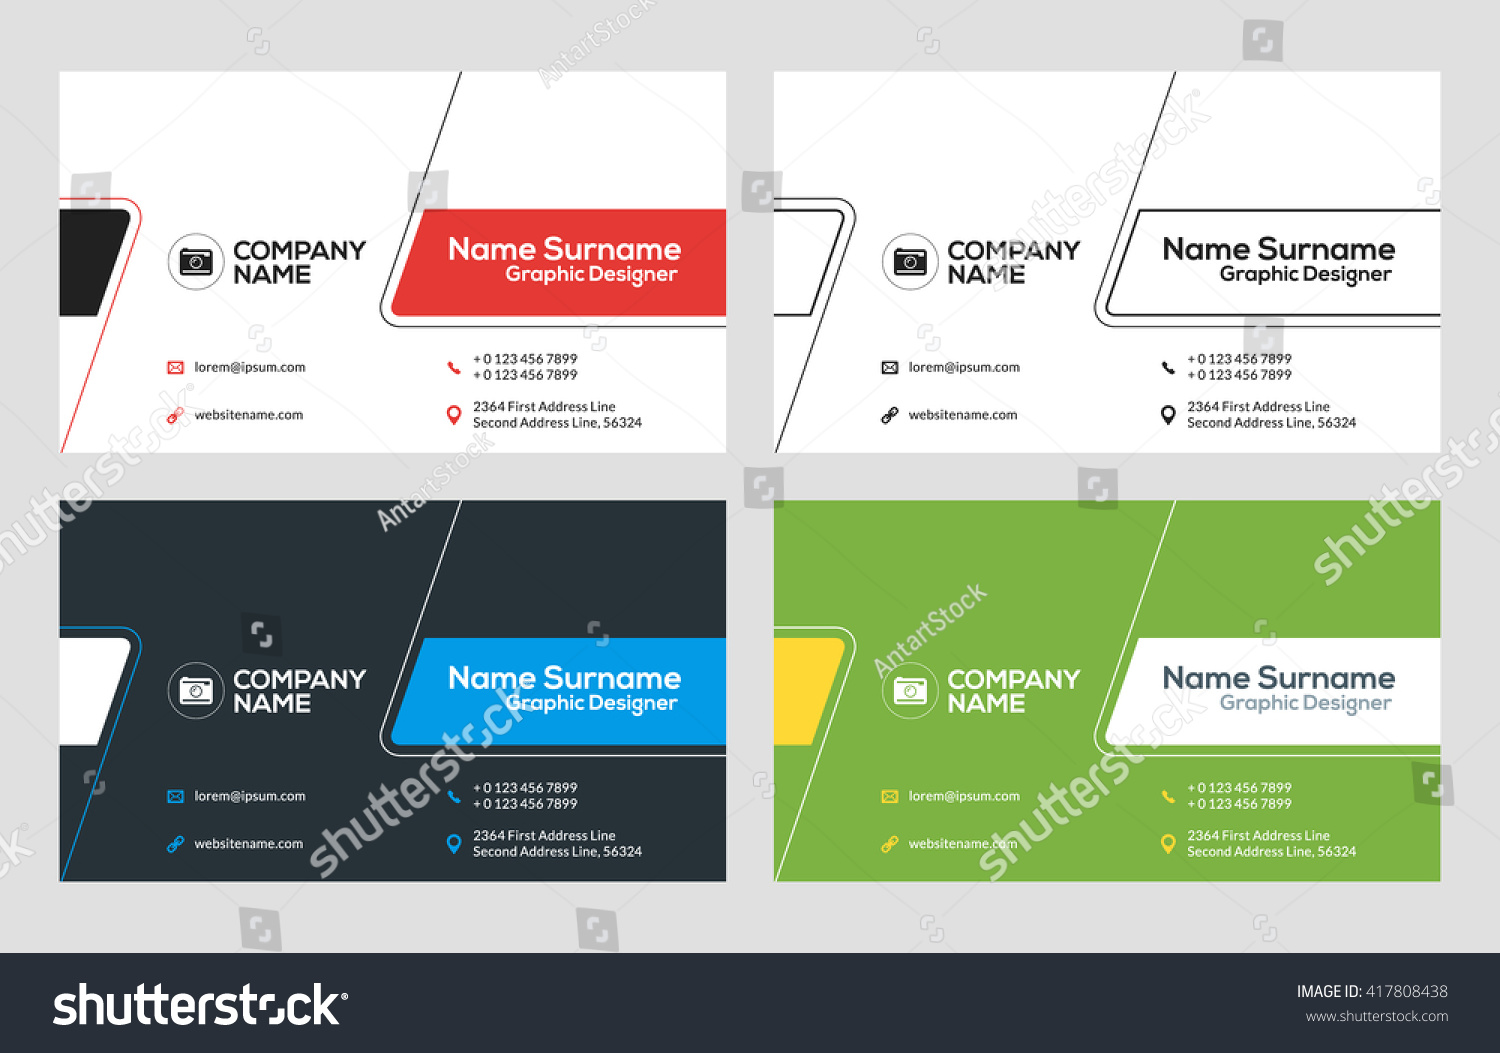 Business card vector template flat style stock vector 417808438 business card vector template flat style stock vector 417808438 shutterstock reheart Gallery